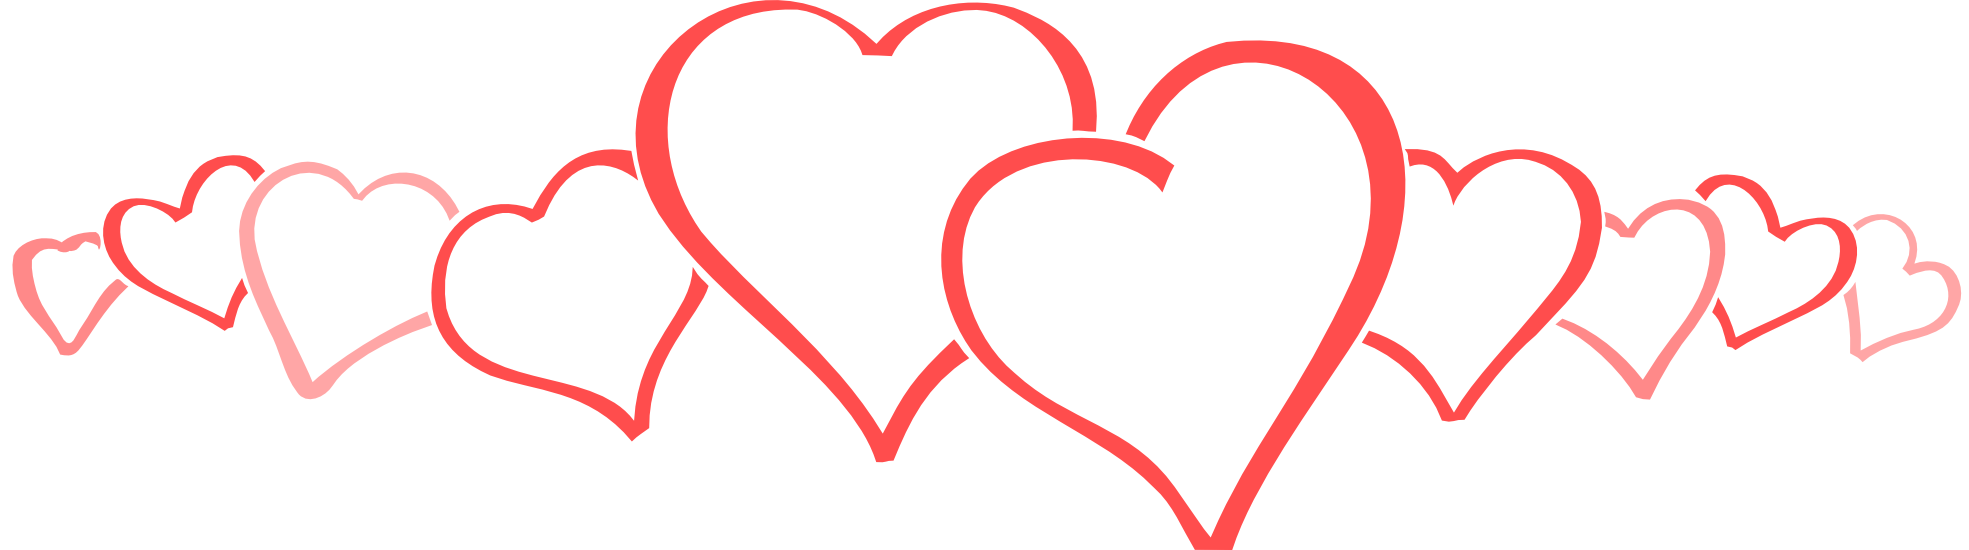 Valentine Hearts Images Clipart.